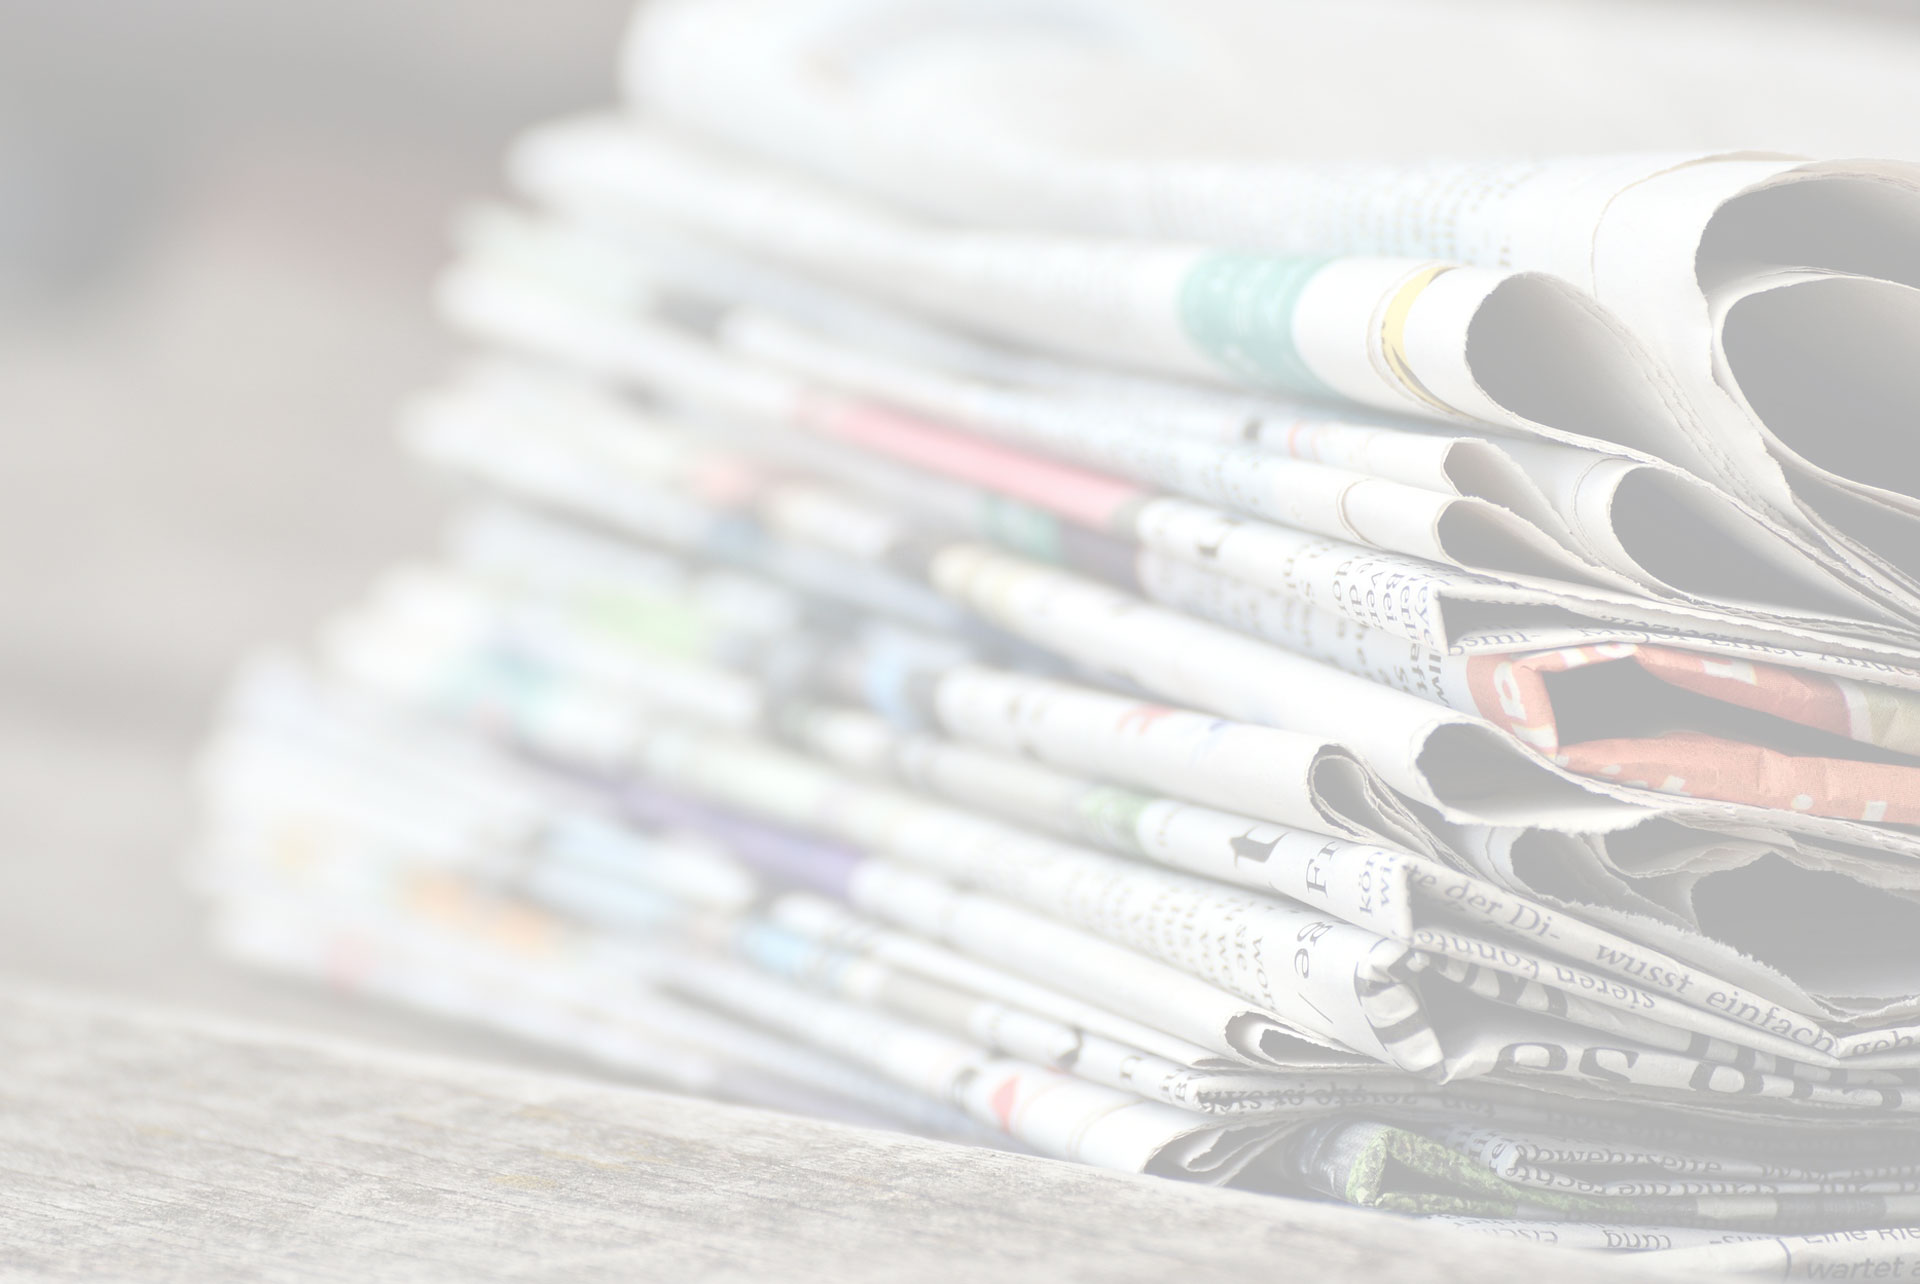 Terremoto in Indonesia